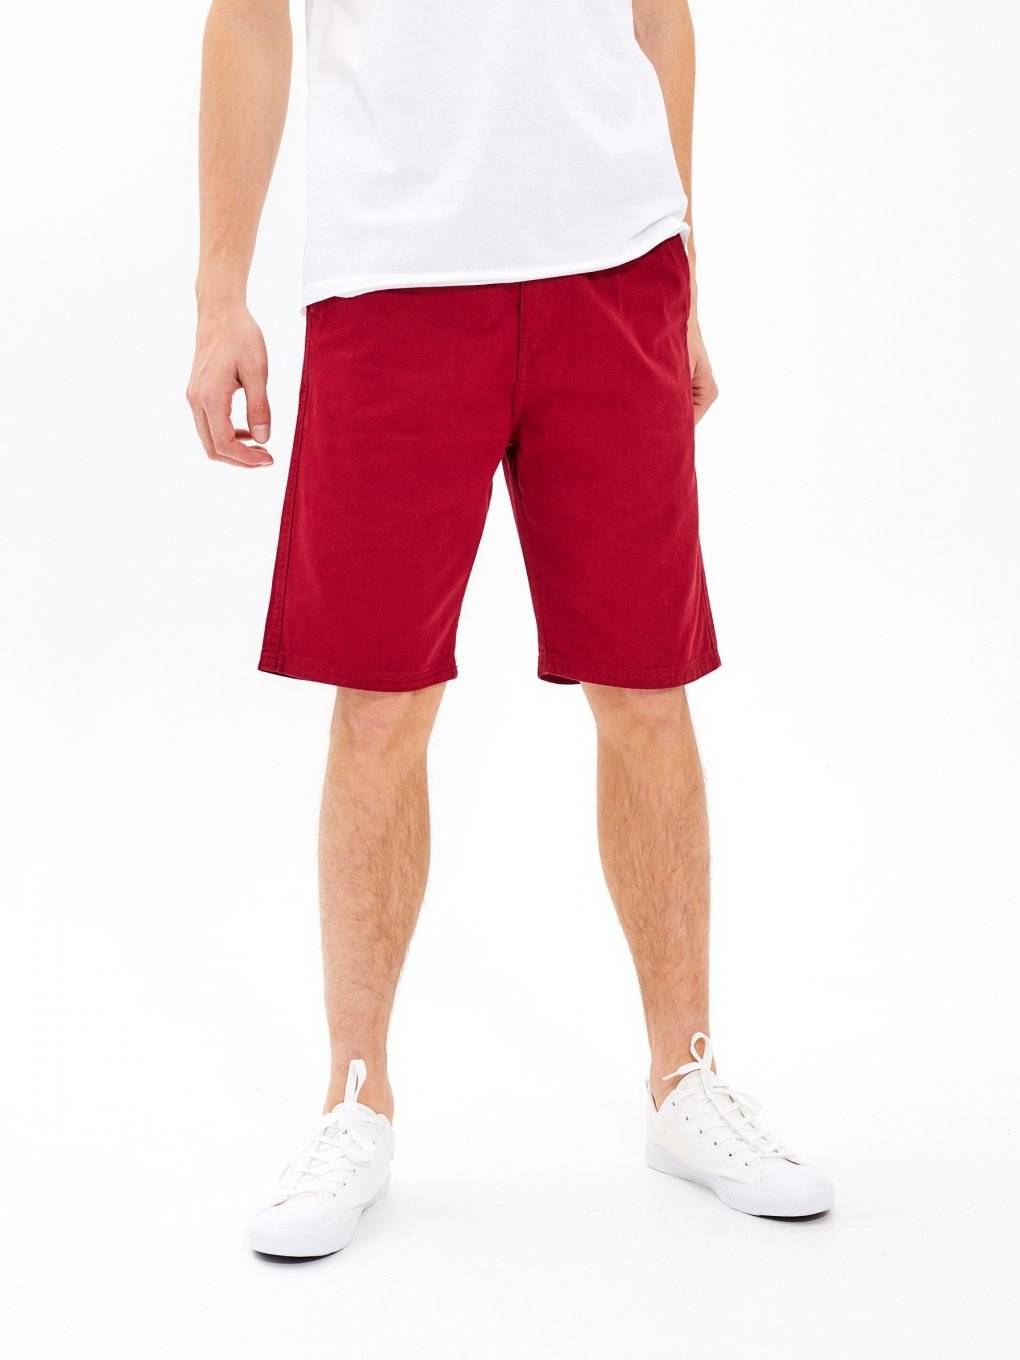 Basic cotton twill shorts